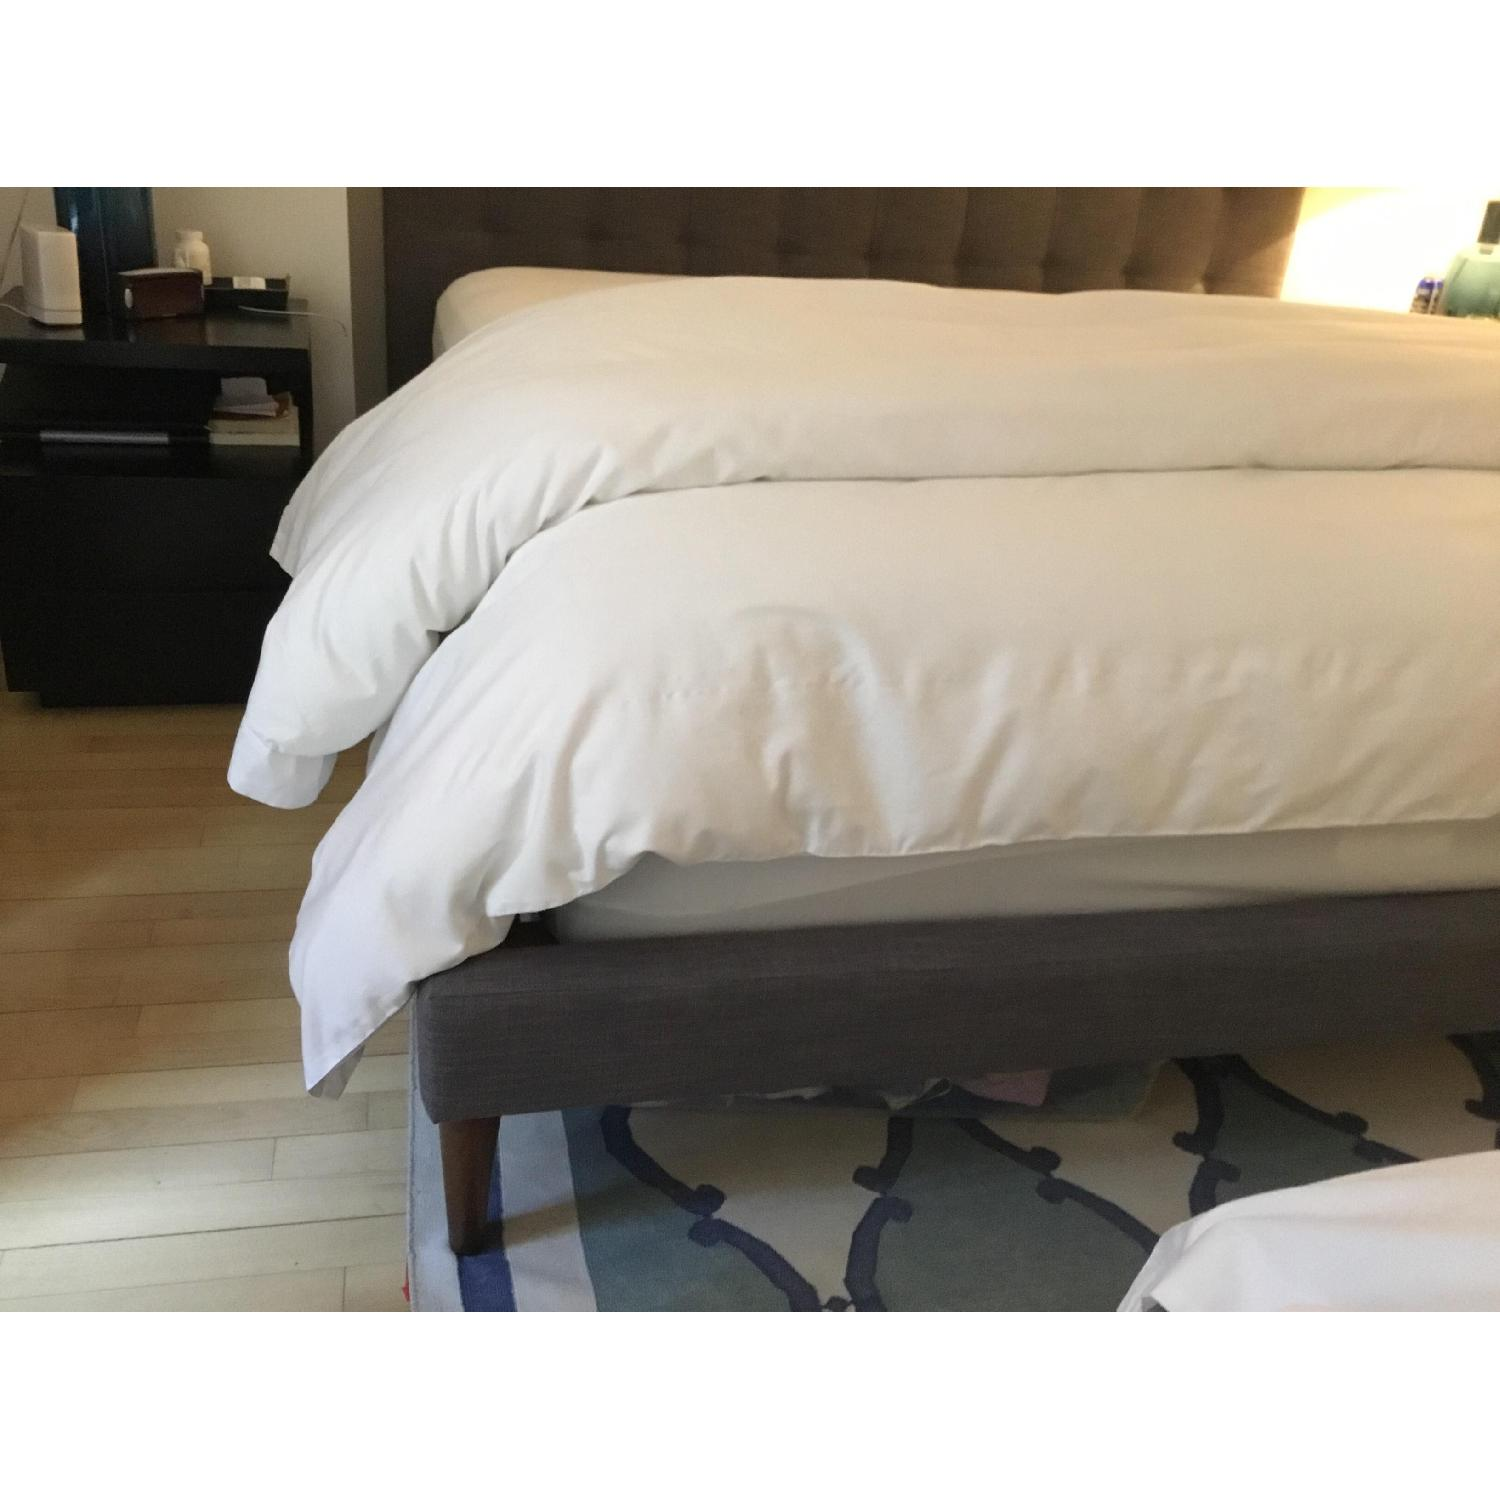 West Elm Tapered Leg Linen King Bed w/ Grid Tufted Headboard-3